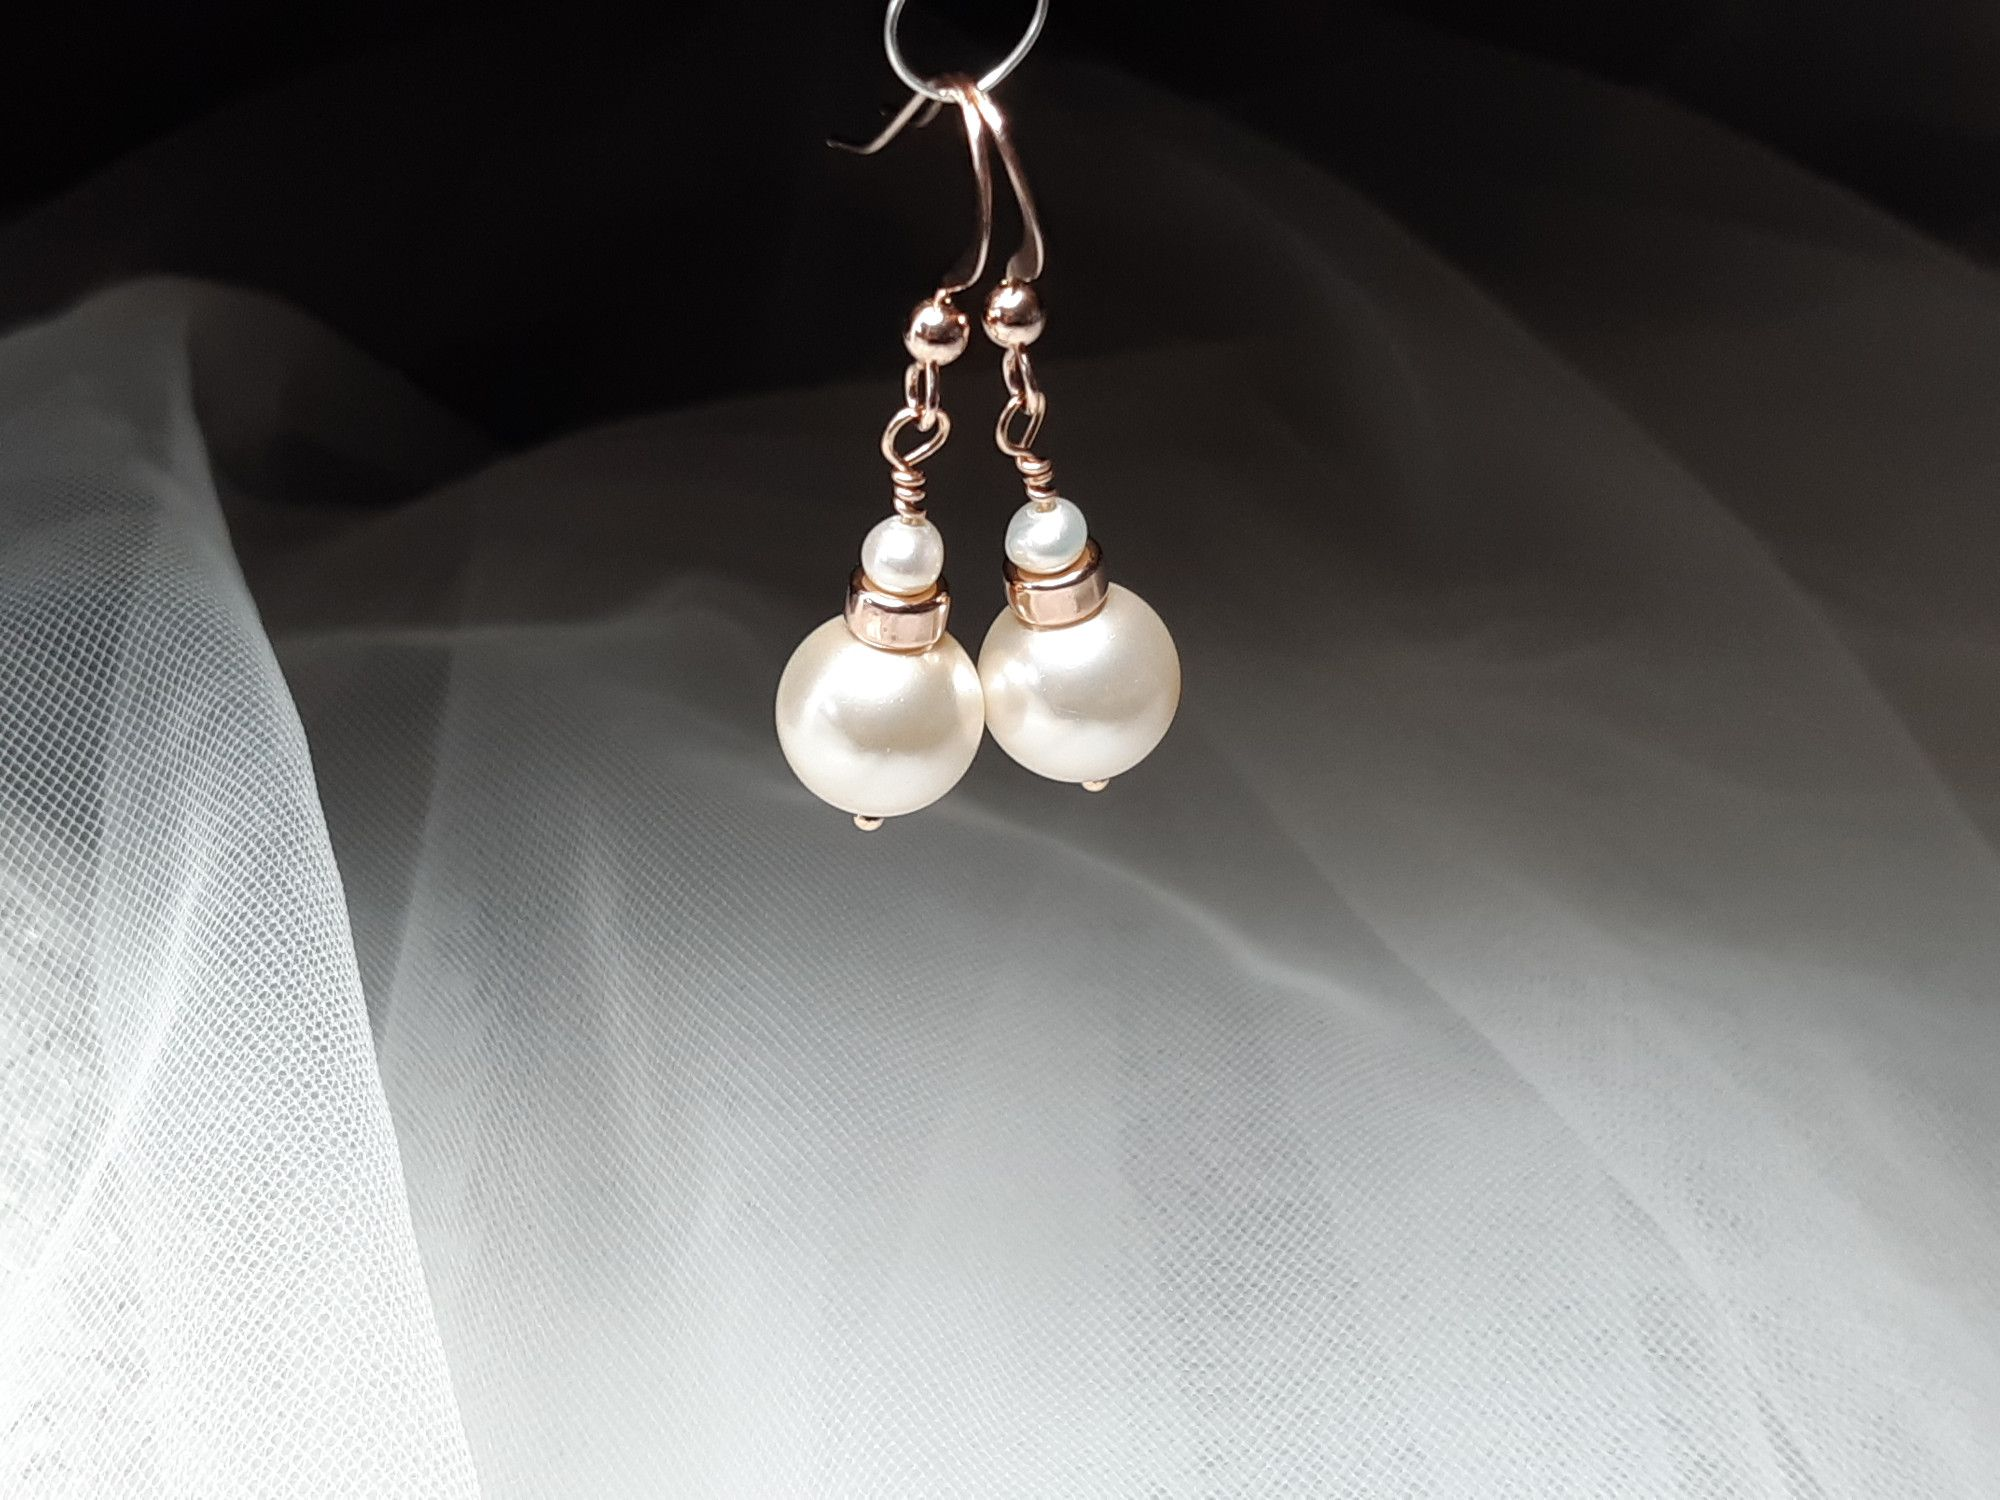 Occasion-bridal-wedding-pearl earrings with rose gold-2.jpg